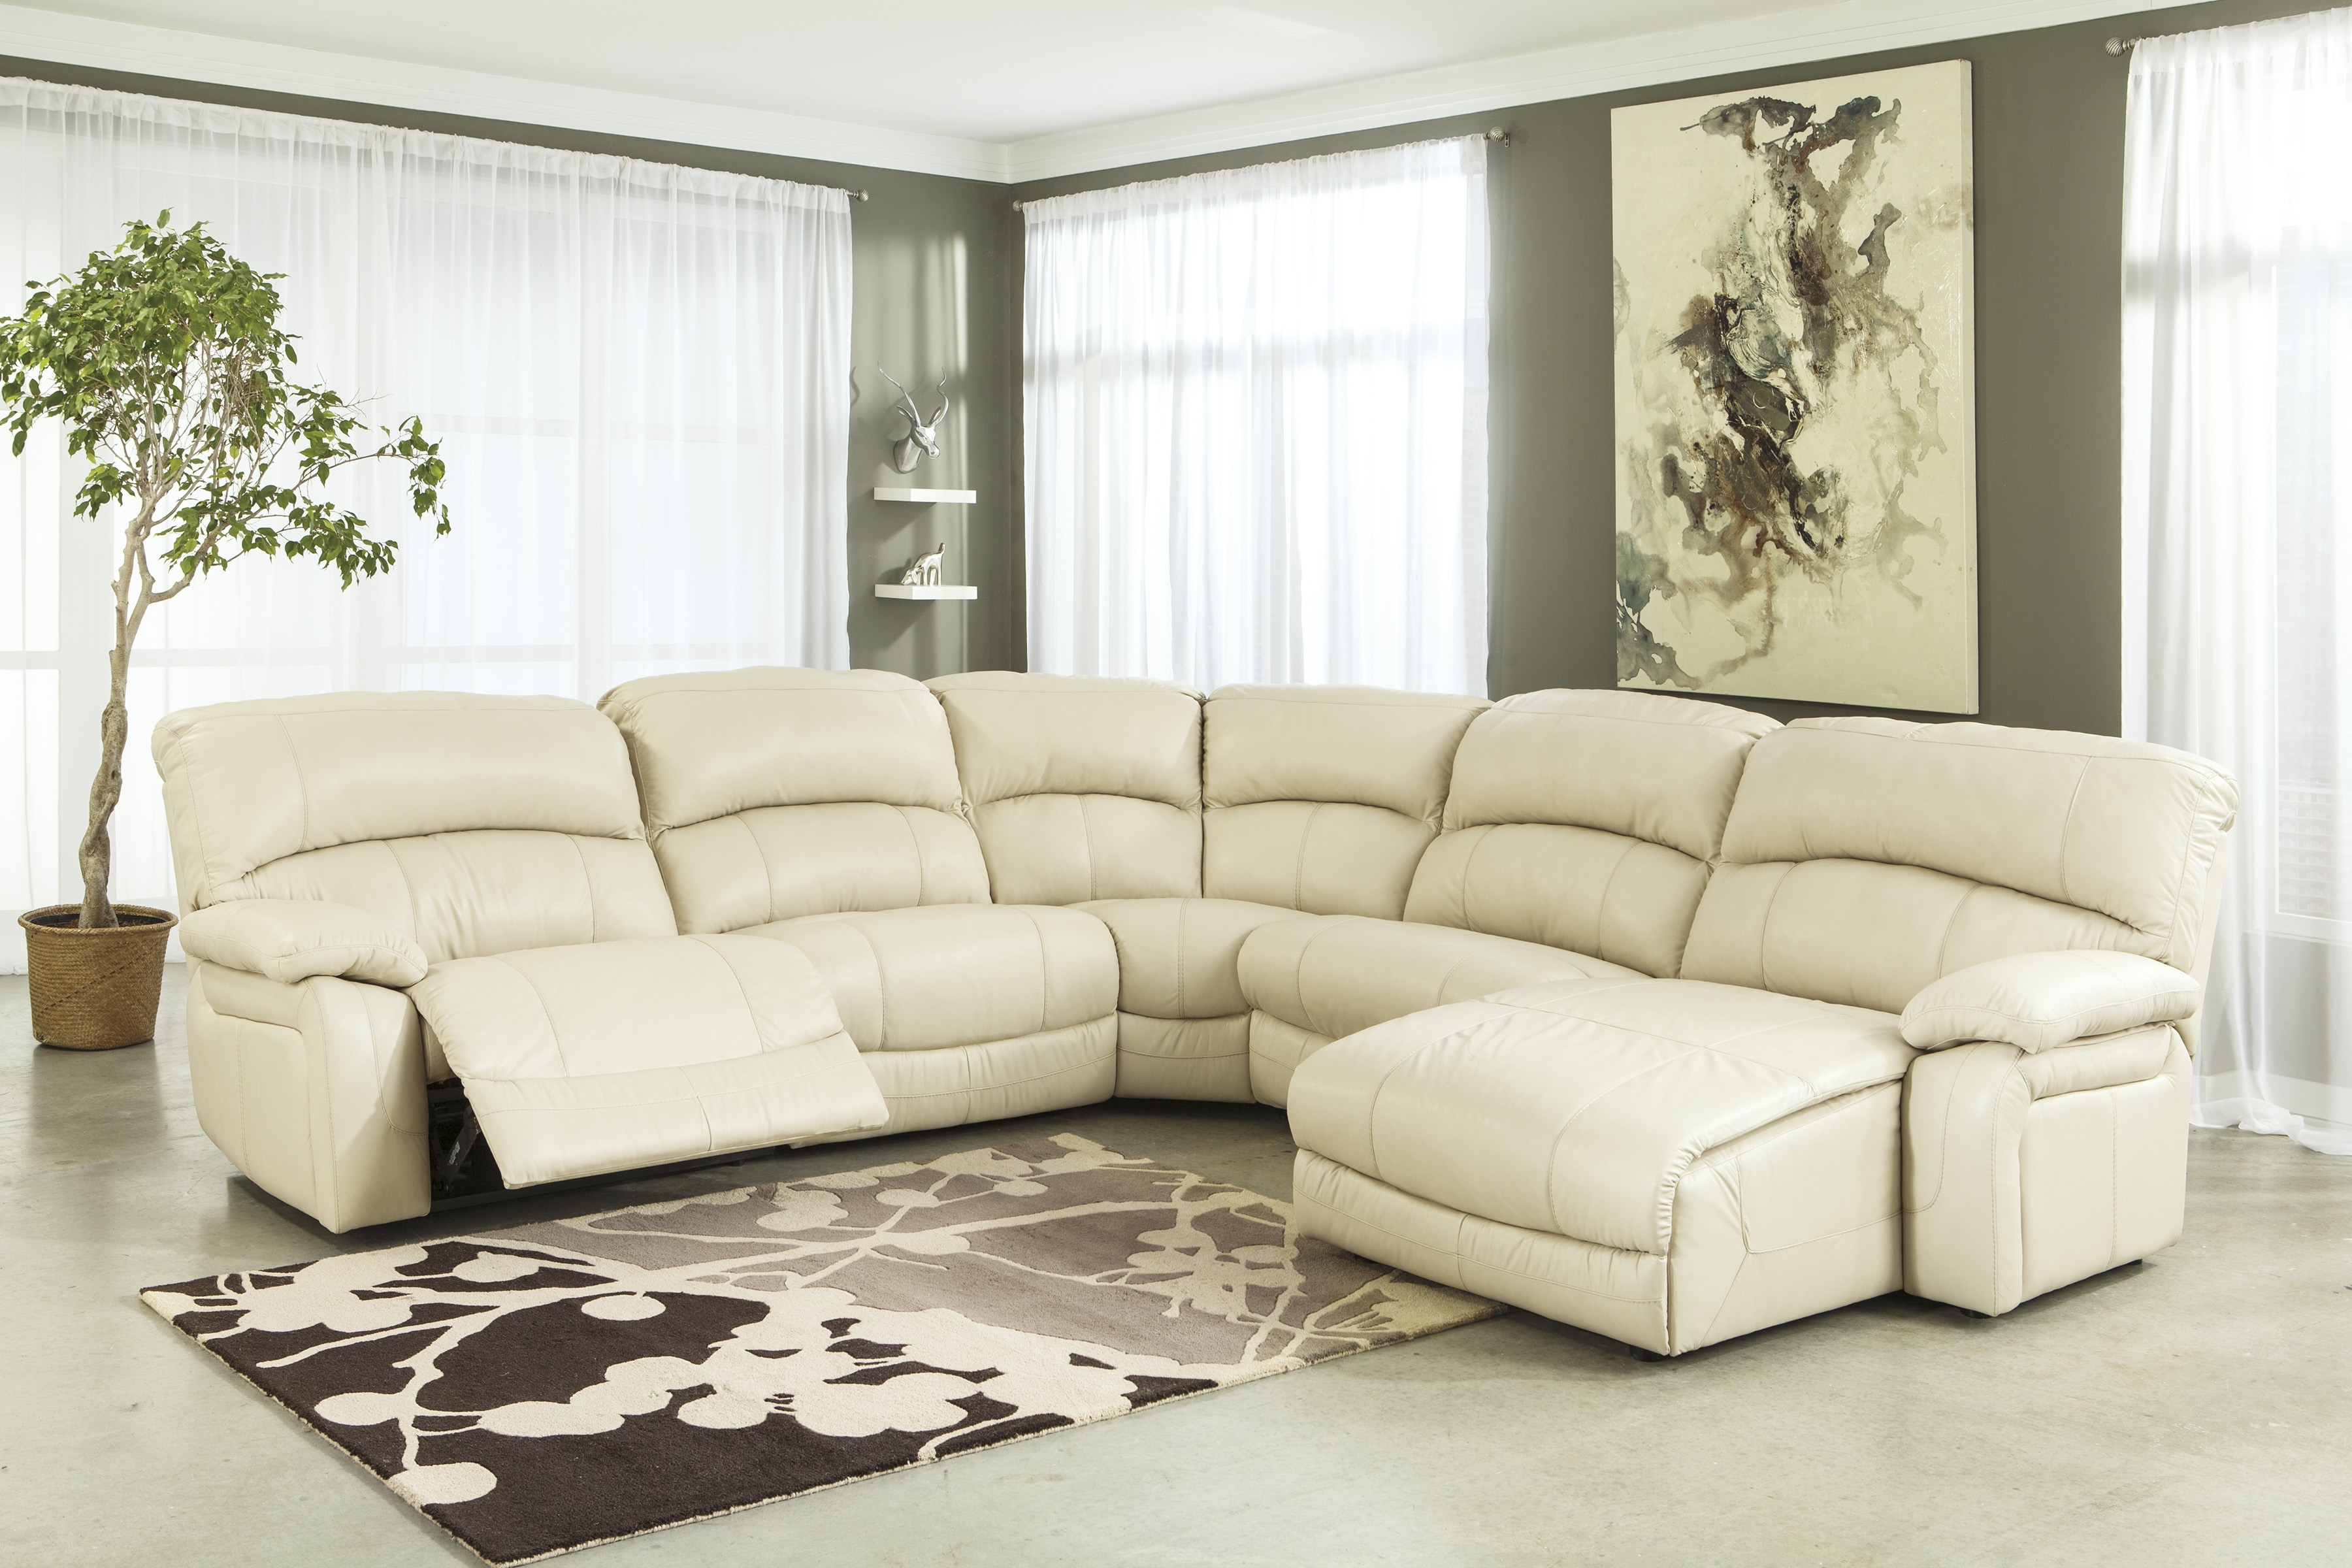 Famous Modern Couches Tags : Modern Sofa Recliner Sectional Reclining For Large Sofa Chairs (View 14 of 20)